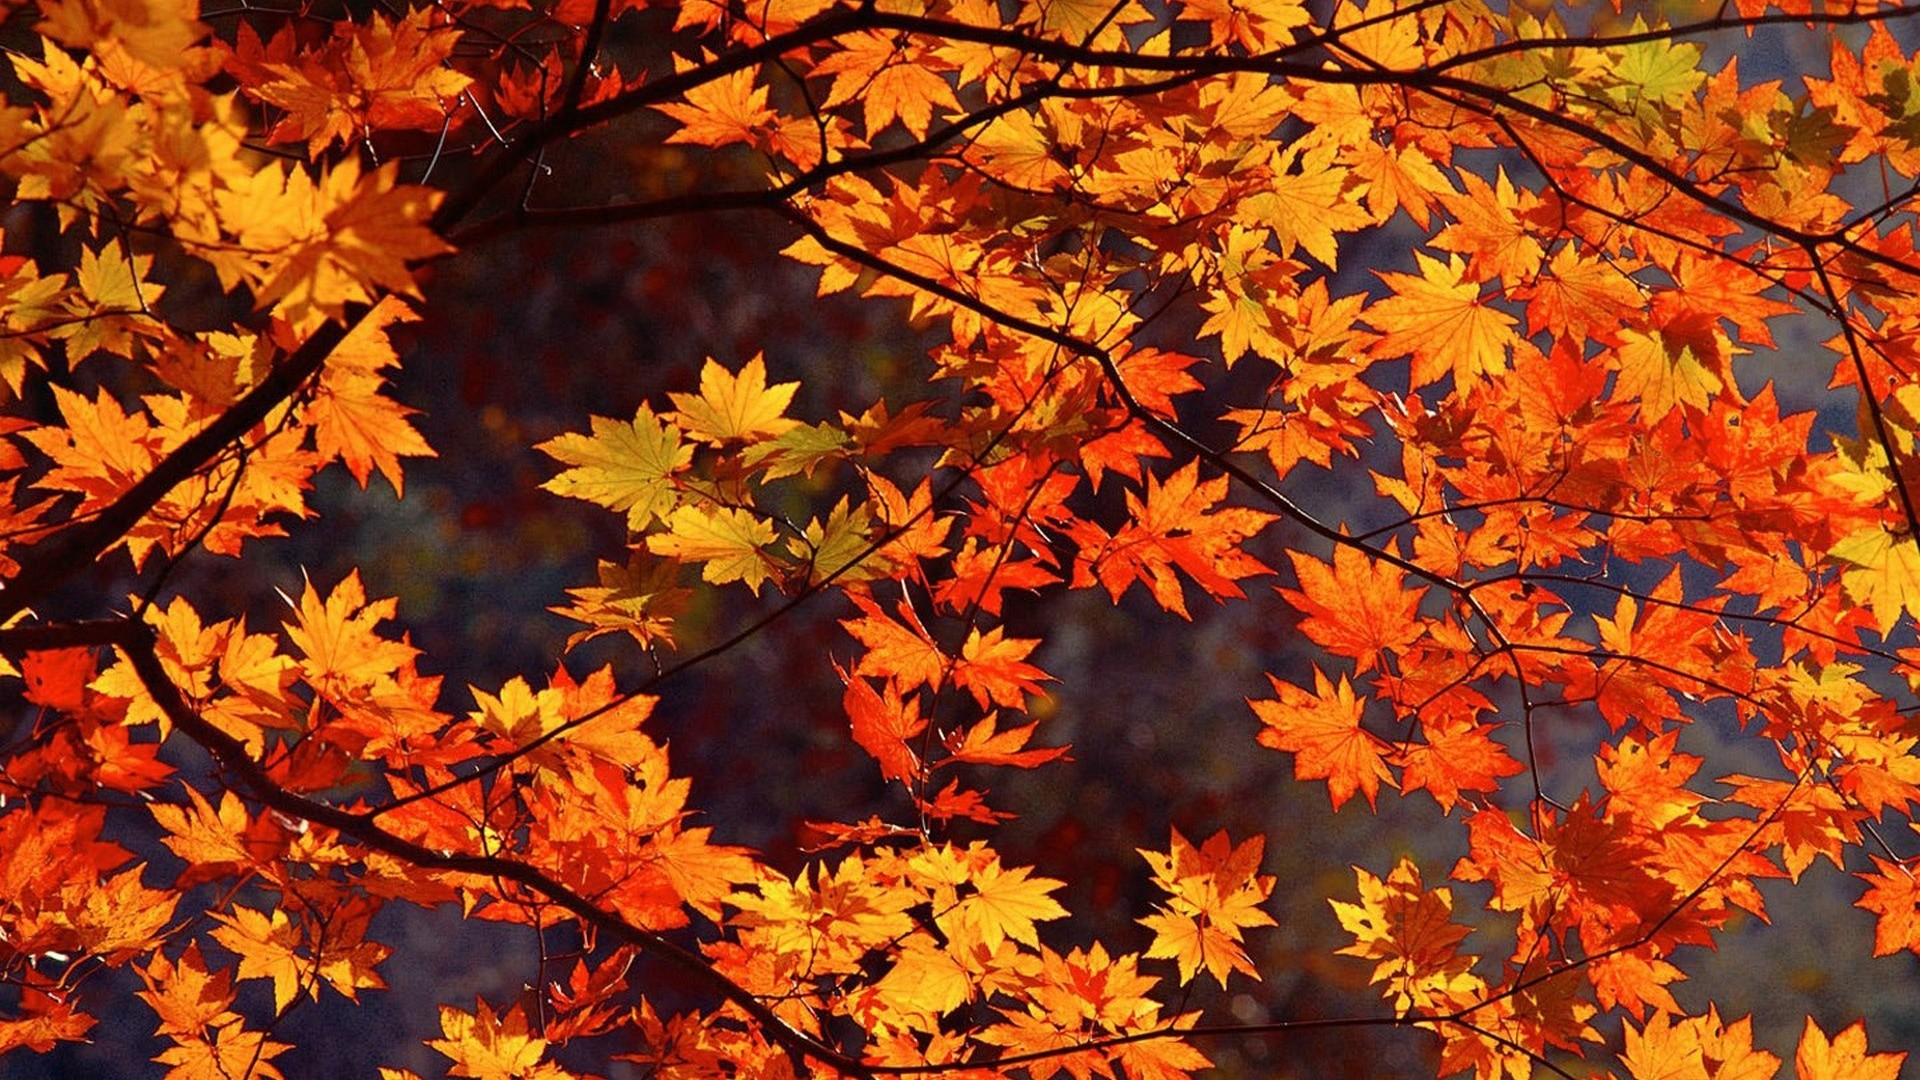 Fall Leaves Hd Mobile Wallpaper Fall Themed Wallpapers Desktop 61 Background Pictures